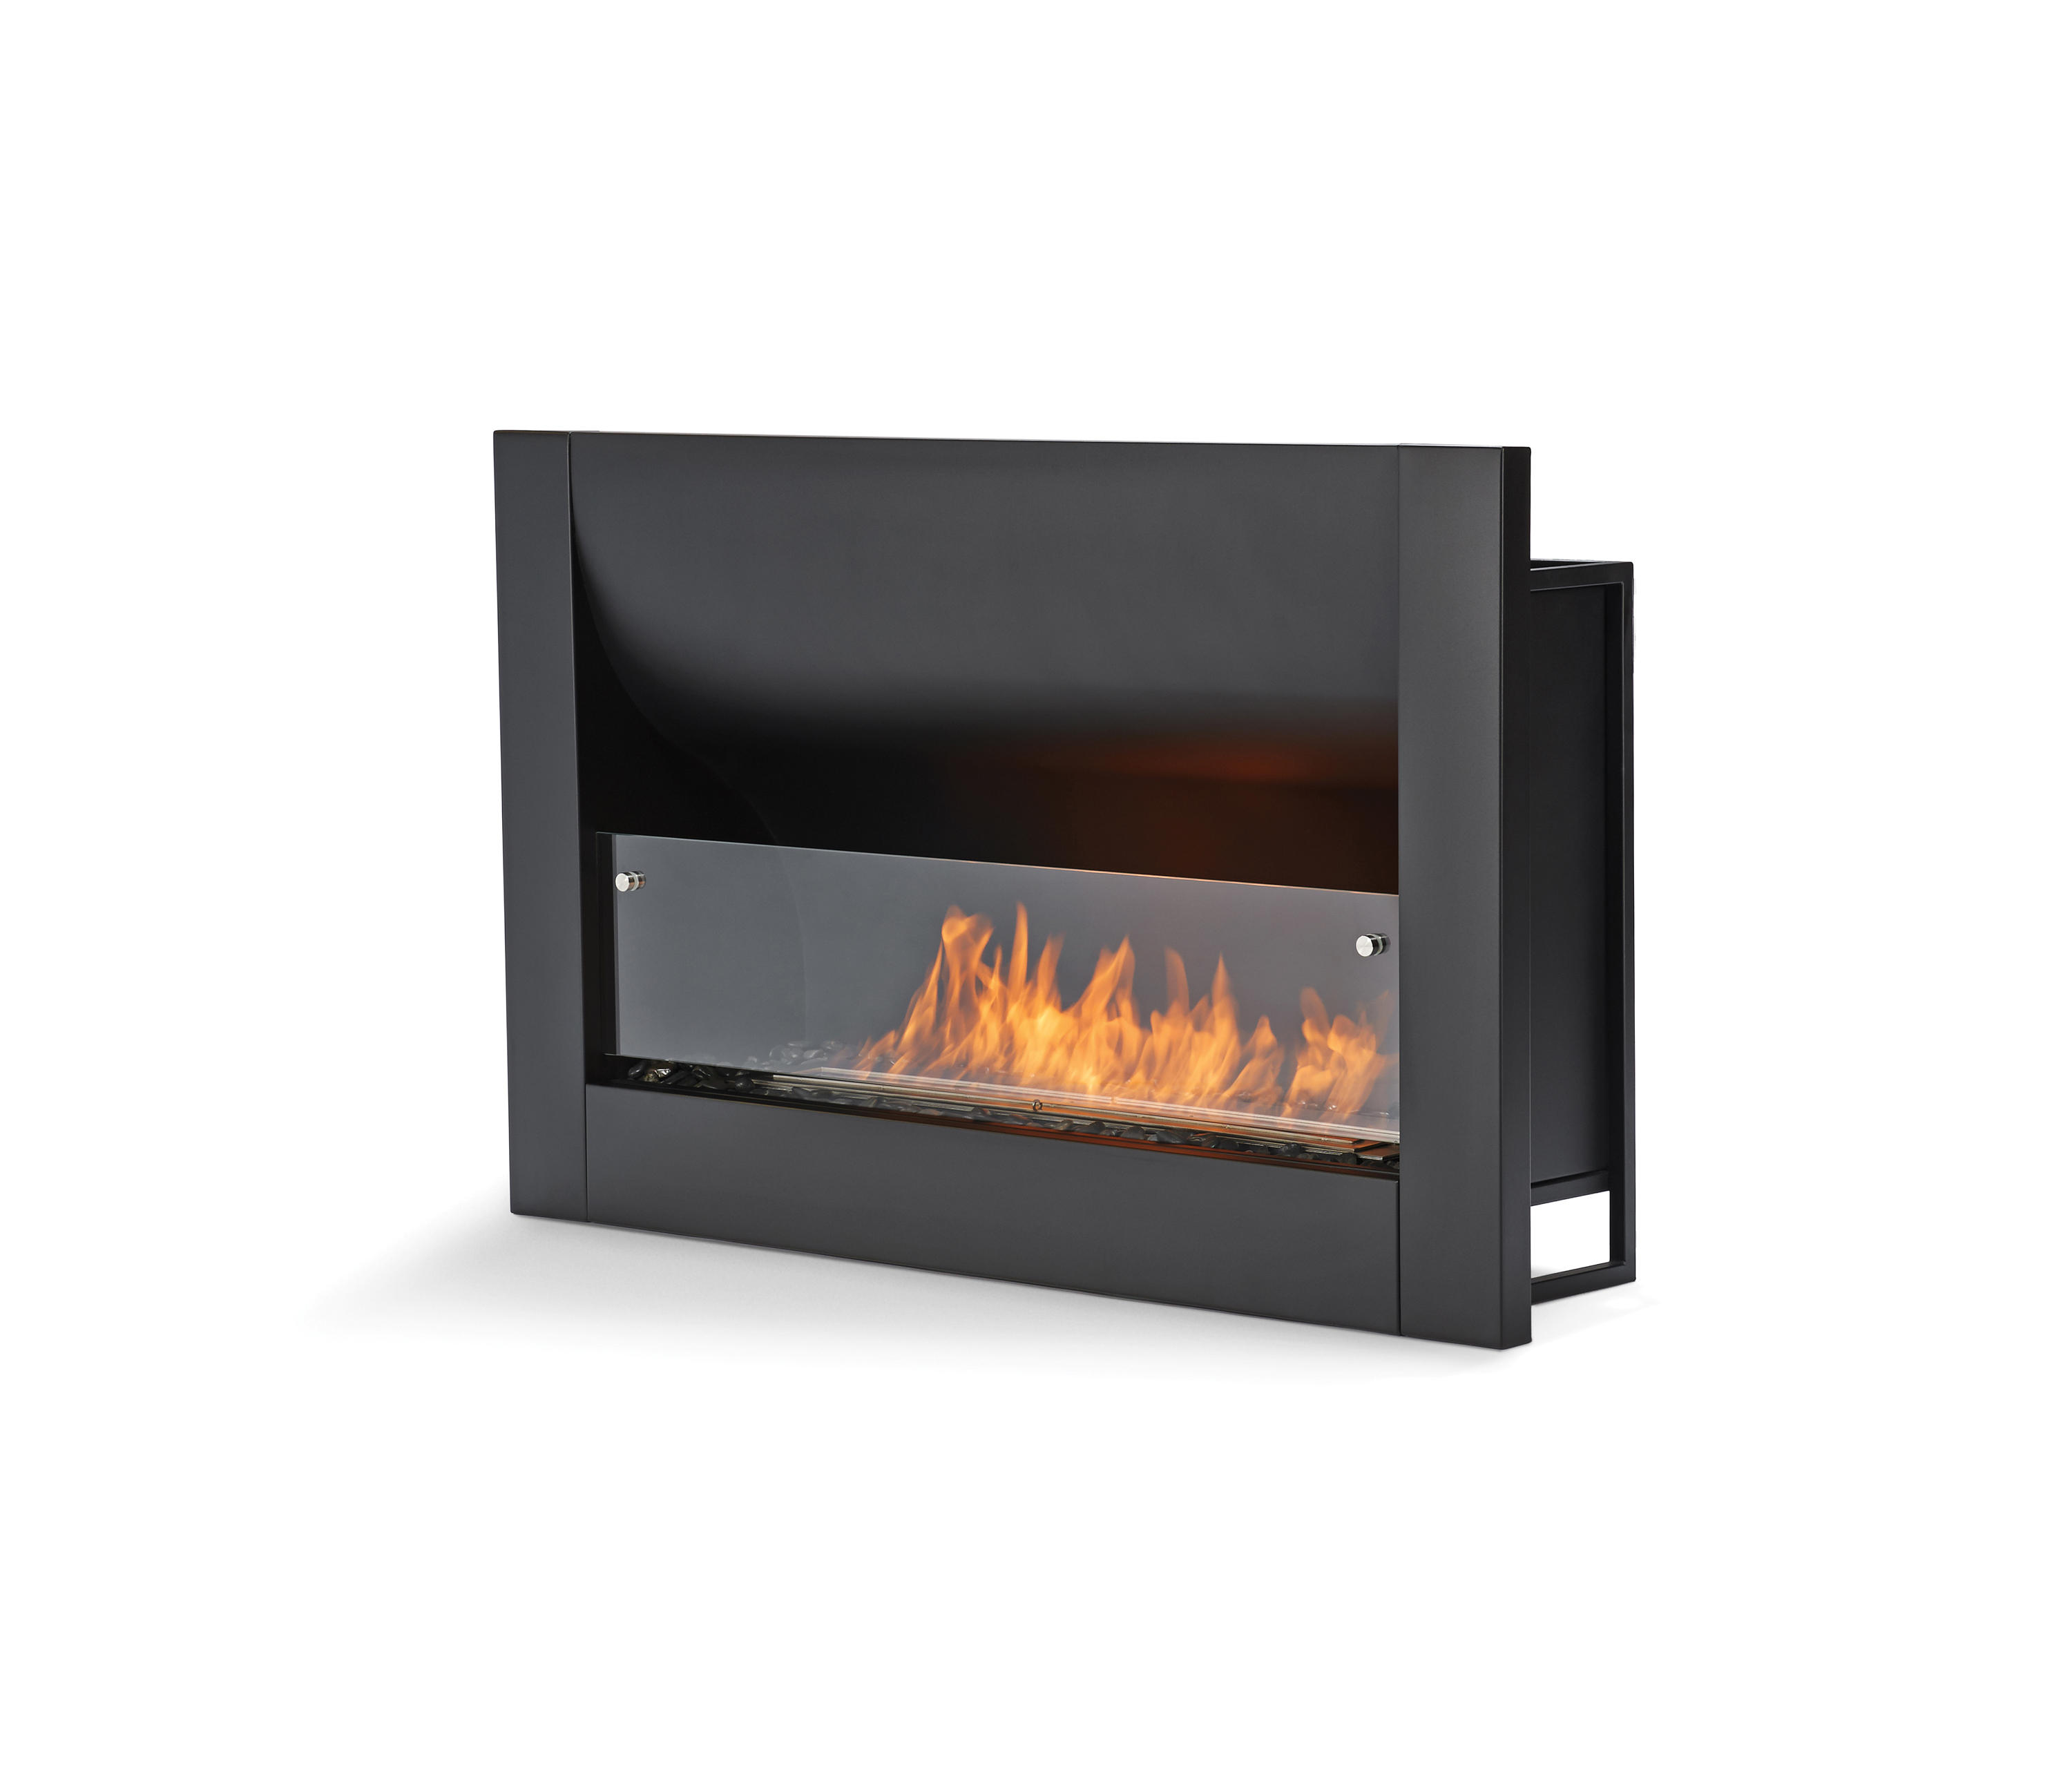 fire product en blk fl ecosmart firebox by ethanol burner fireplace b inserts from digital